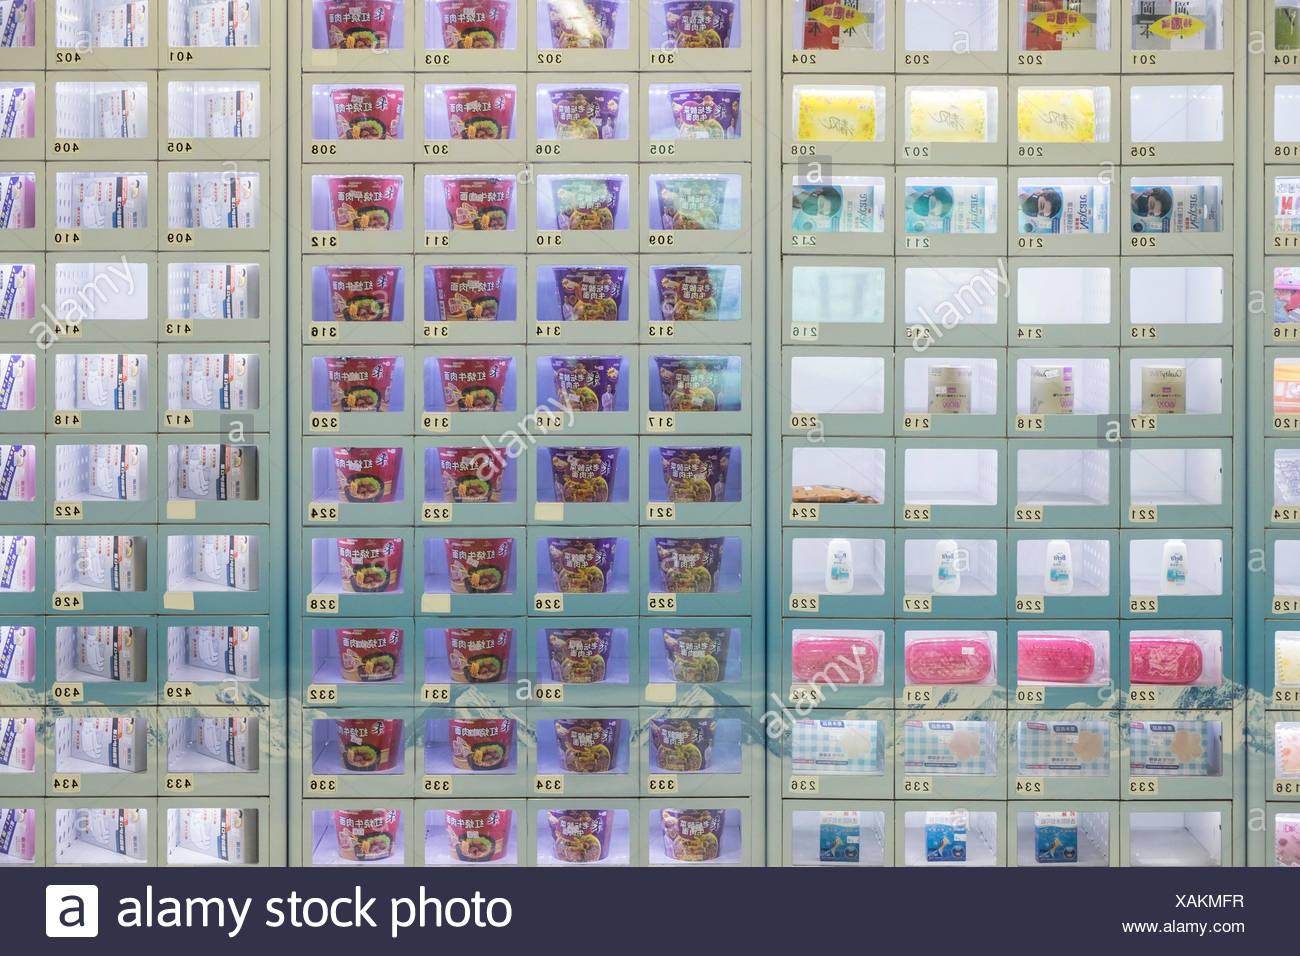 automate for food, toys and toiletry - Stock Image